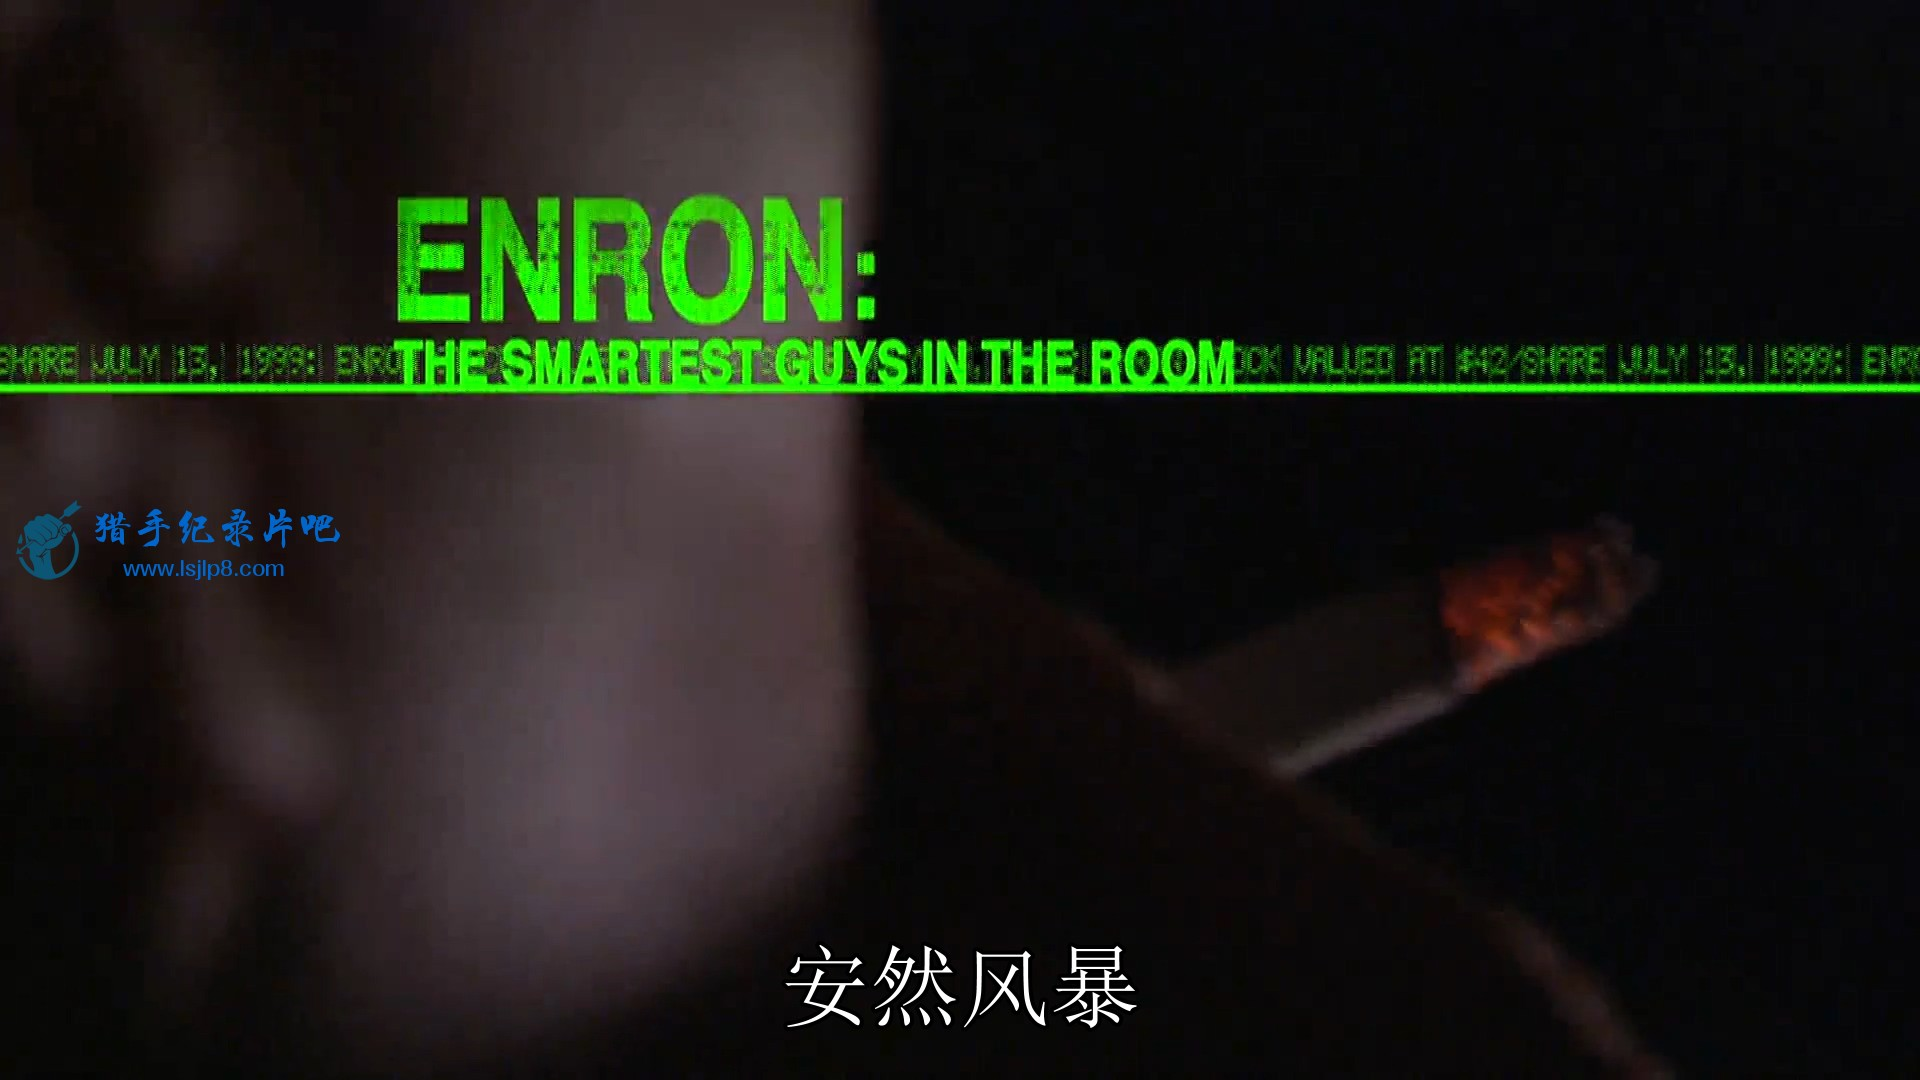 Enron.The.Smartest.Guys.in.the.Room.2005.1080p.BluRay.H264.AAC-RARBG.mp4_2020021.jpg